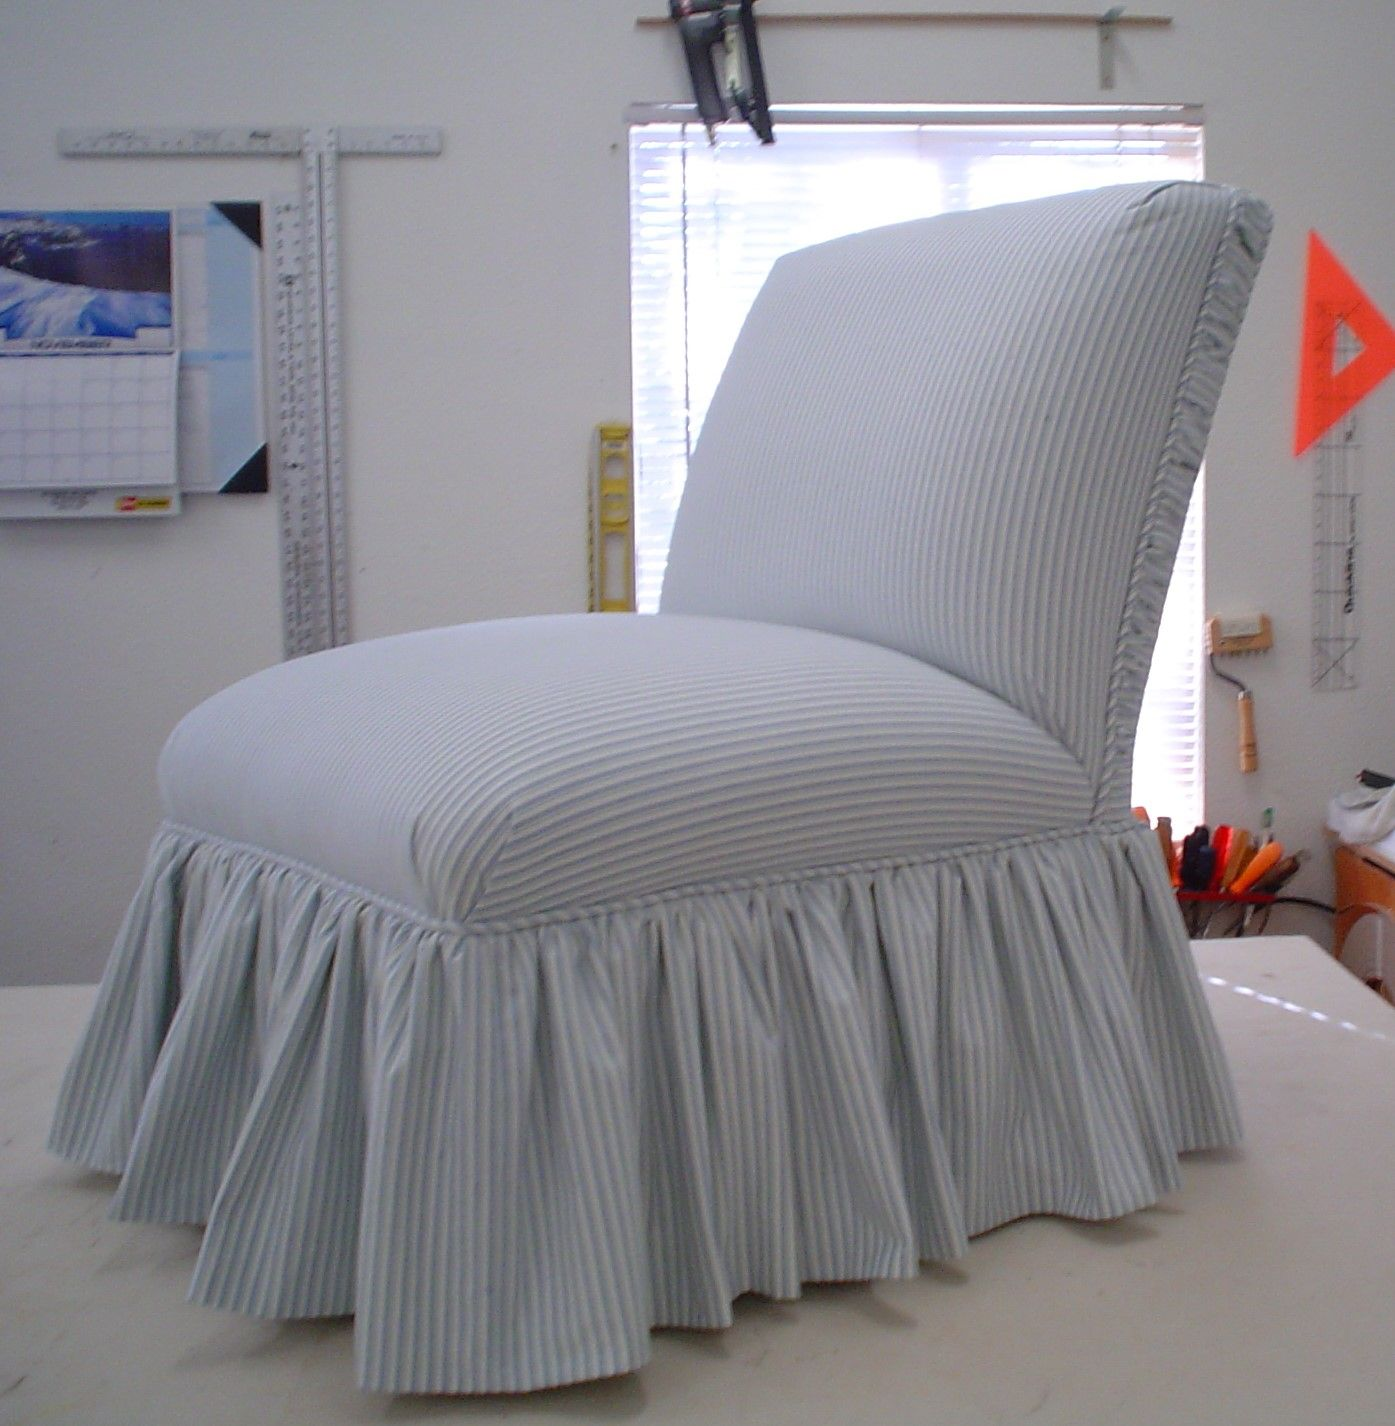 Upholstered Slipper Chair, With Some Ticking Fabric And A